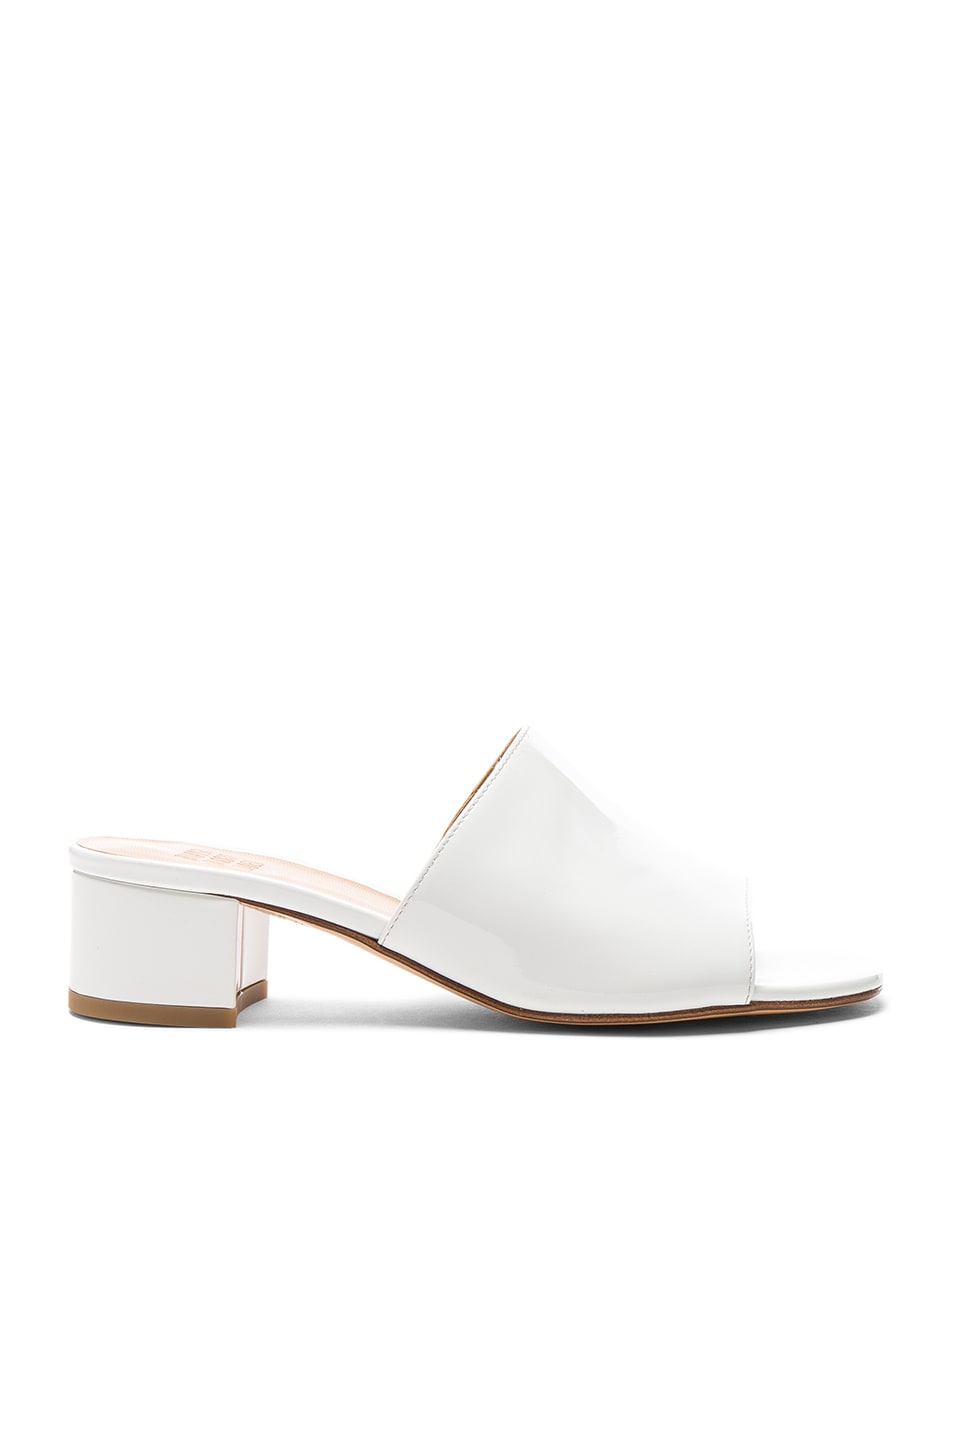 Image 1 of Maryam Nassir Zadeh Patent Leather Sophie Slides in White Patent